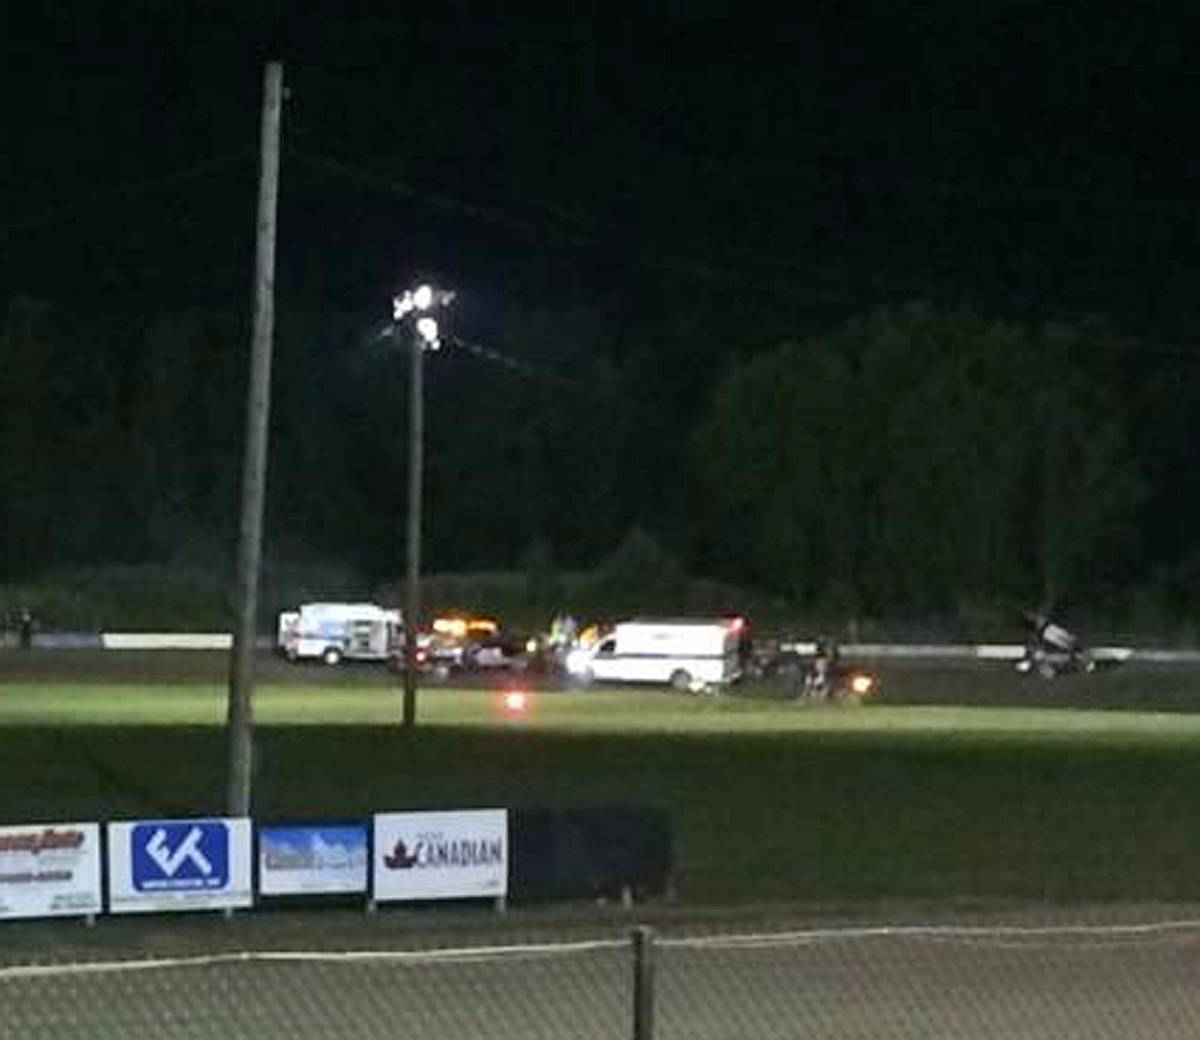 Ambulances on the scene at Canandaigua Motorsports Park on Saturday in Canandaigua, N.Y. NASCAR driver Tony Stewart struck and killed a sprint car driver who had climbed from his car and was on the track trying to confront Stewart during a race in upstate New York on Saturday night.